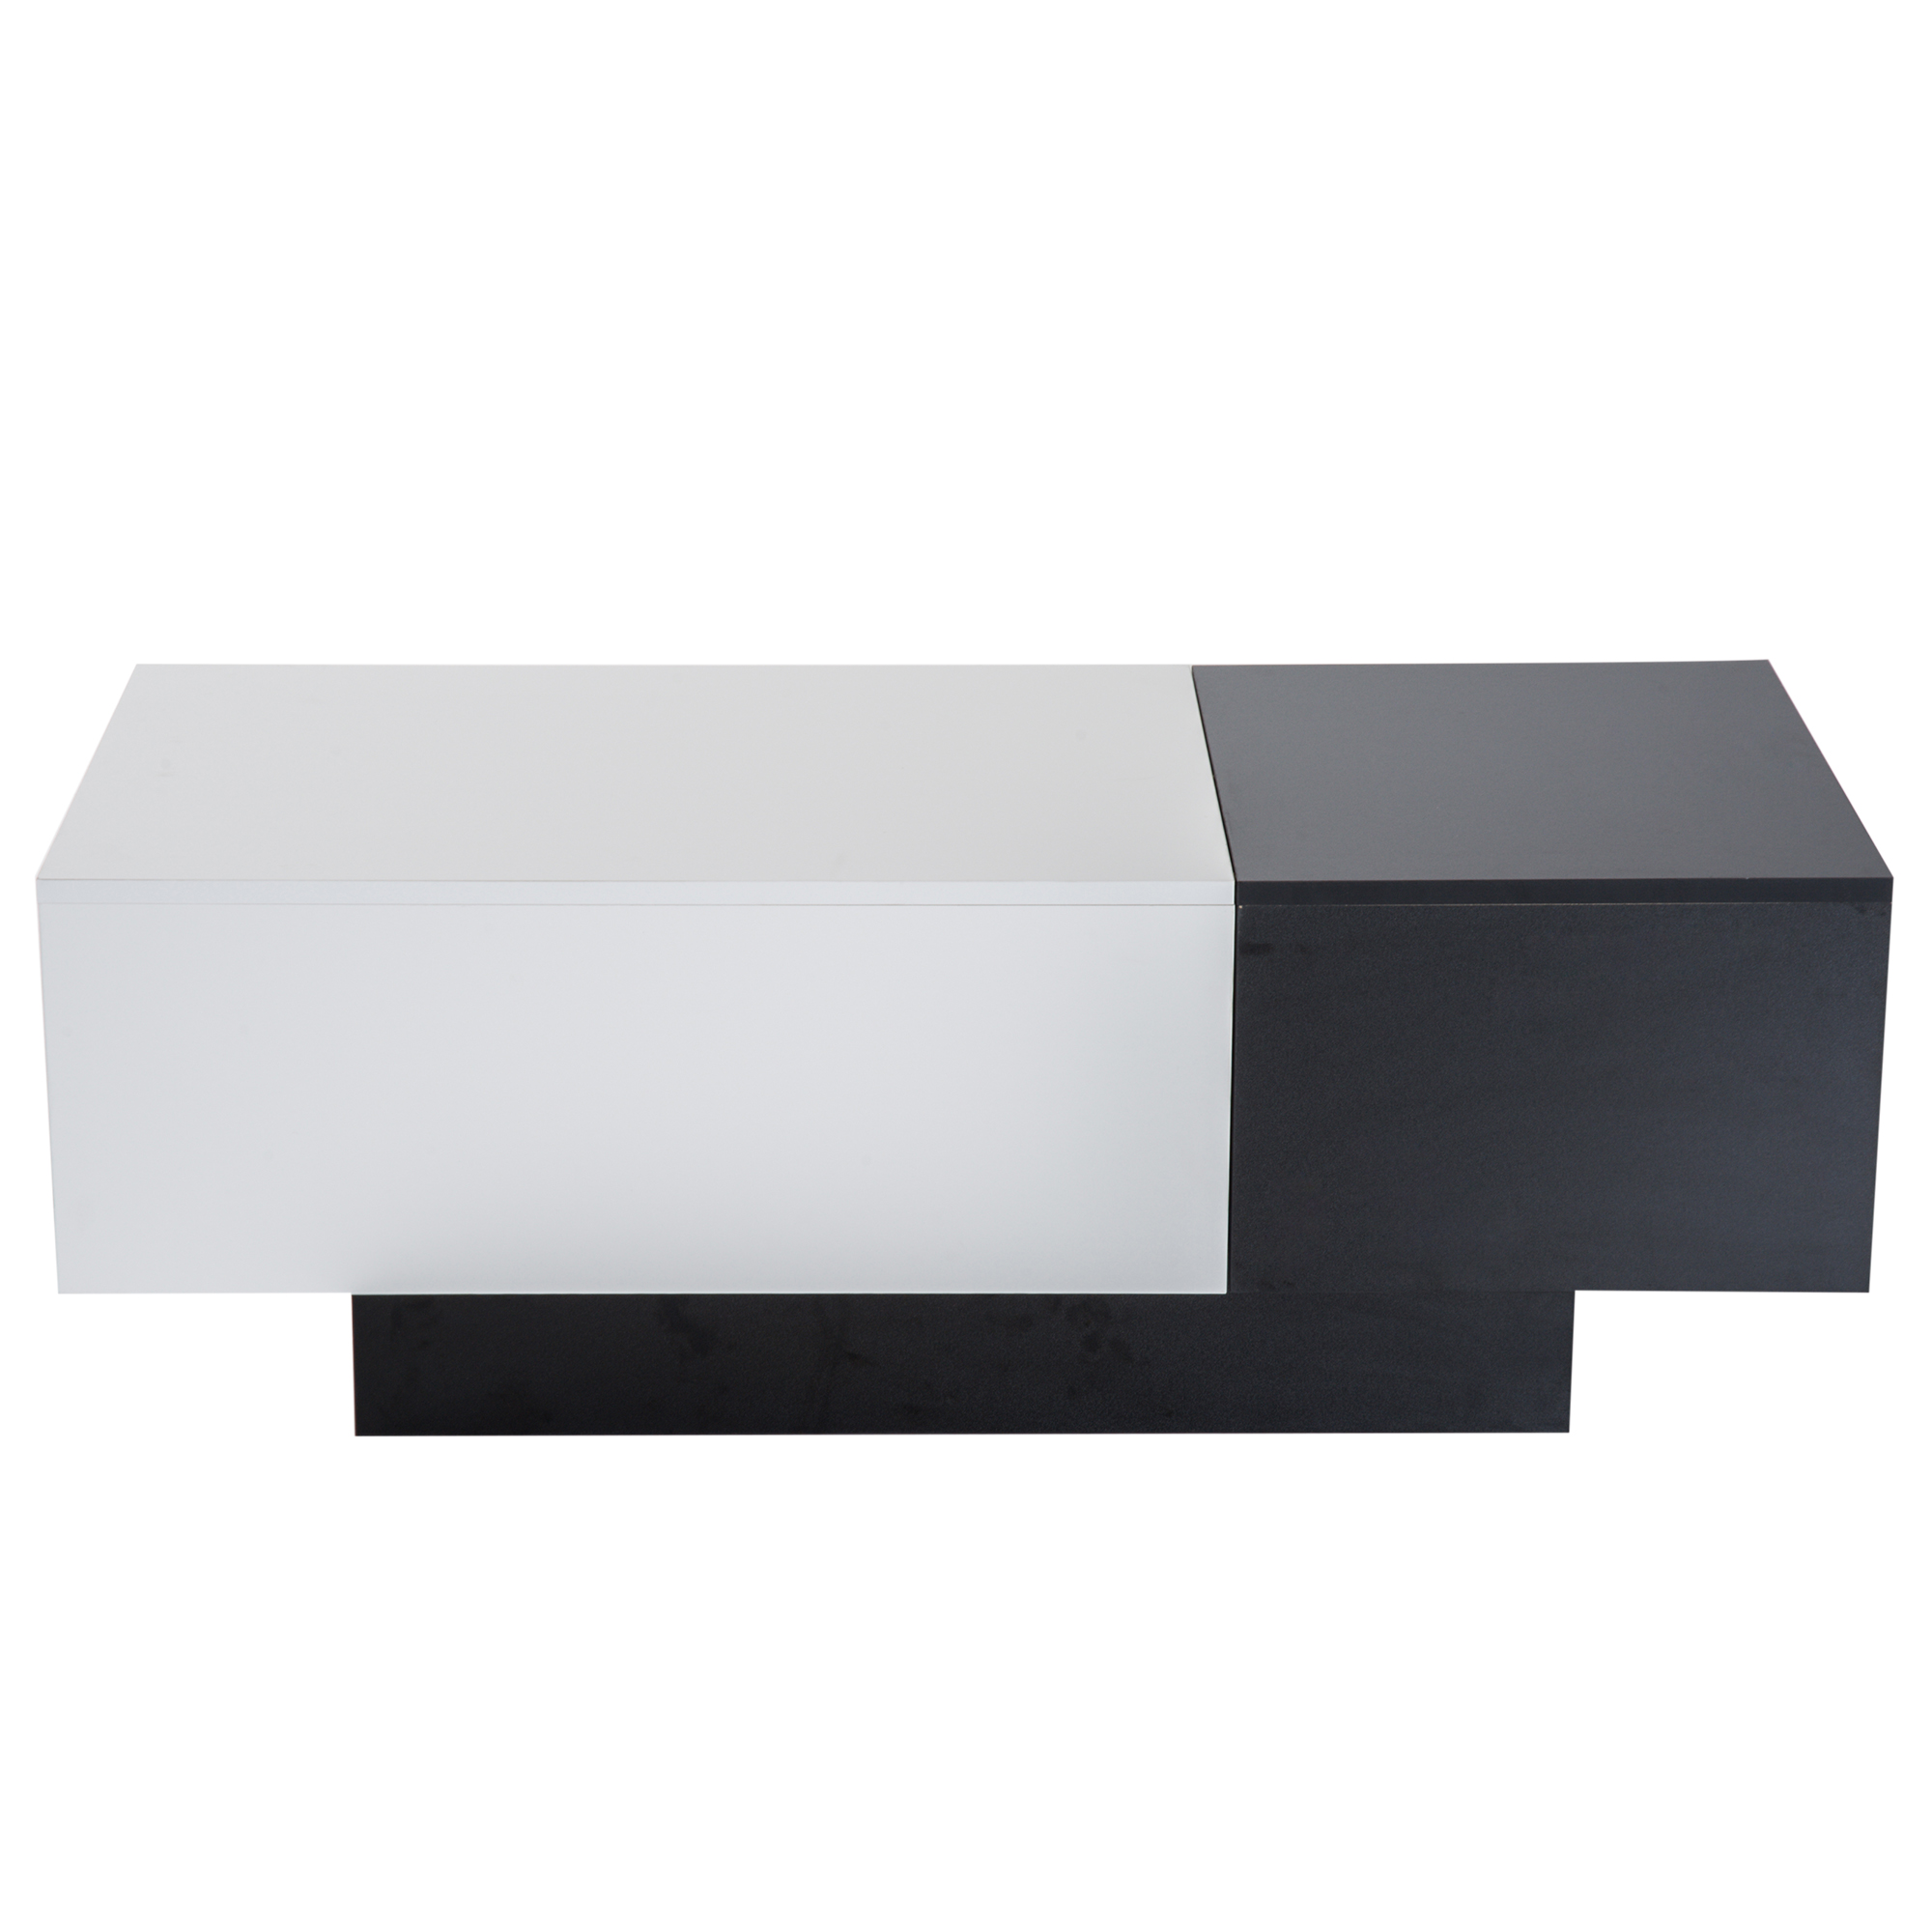 HOMCOM Coffee Table For Living Room Living Room Modern Extensible Space Storage 51 × 140 × 116-160cm White Black